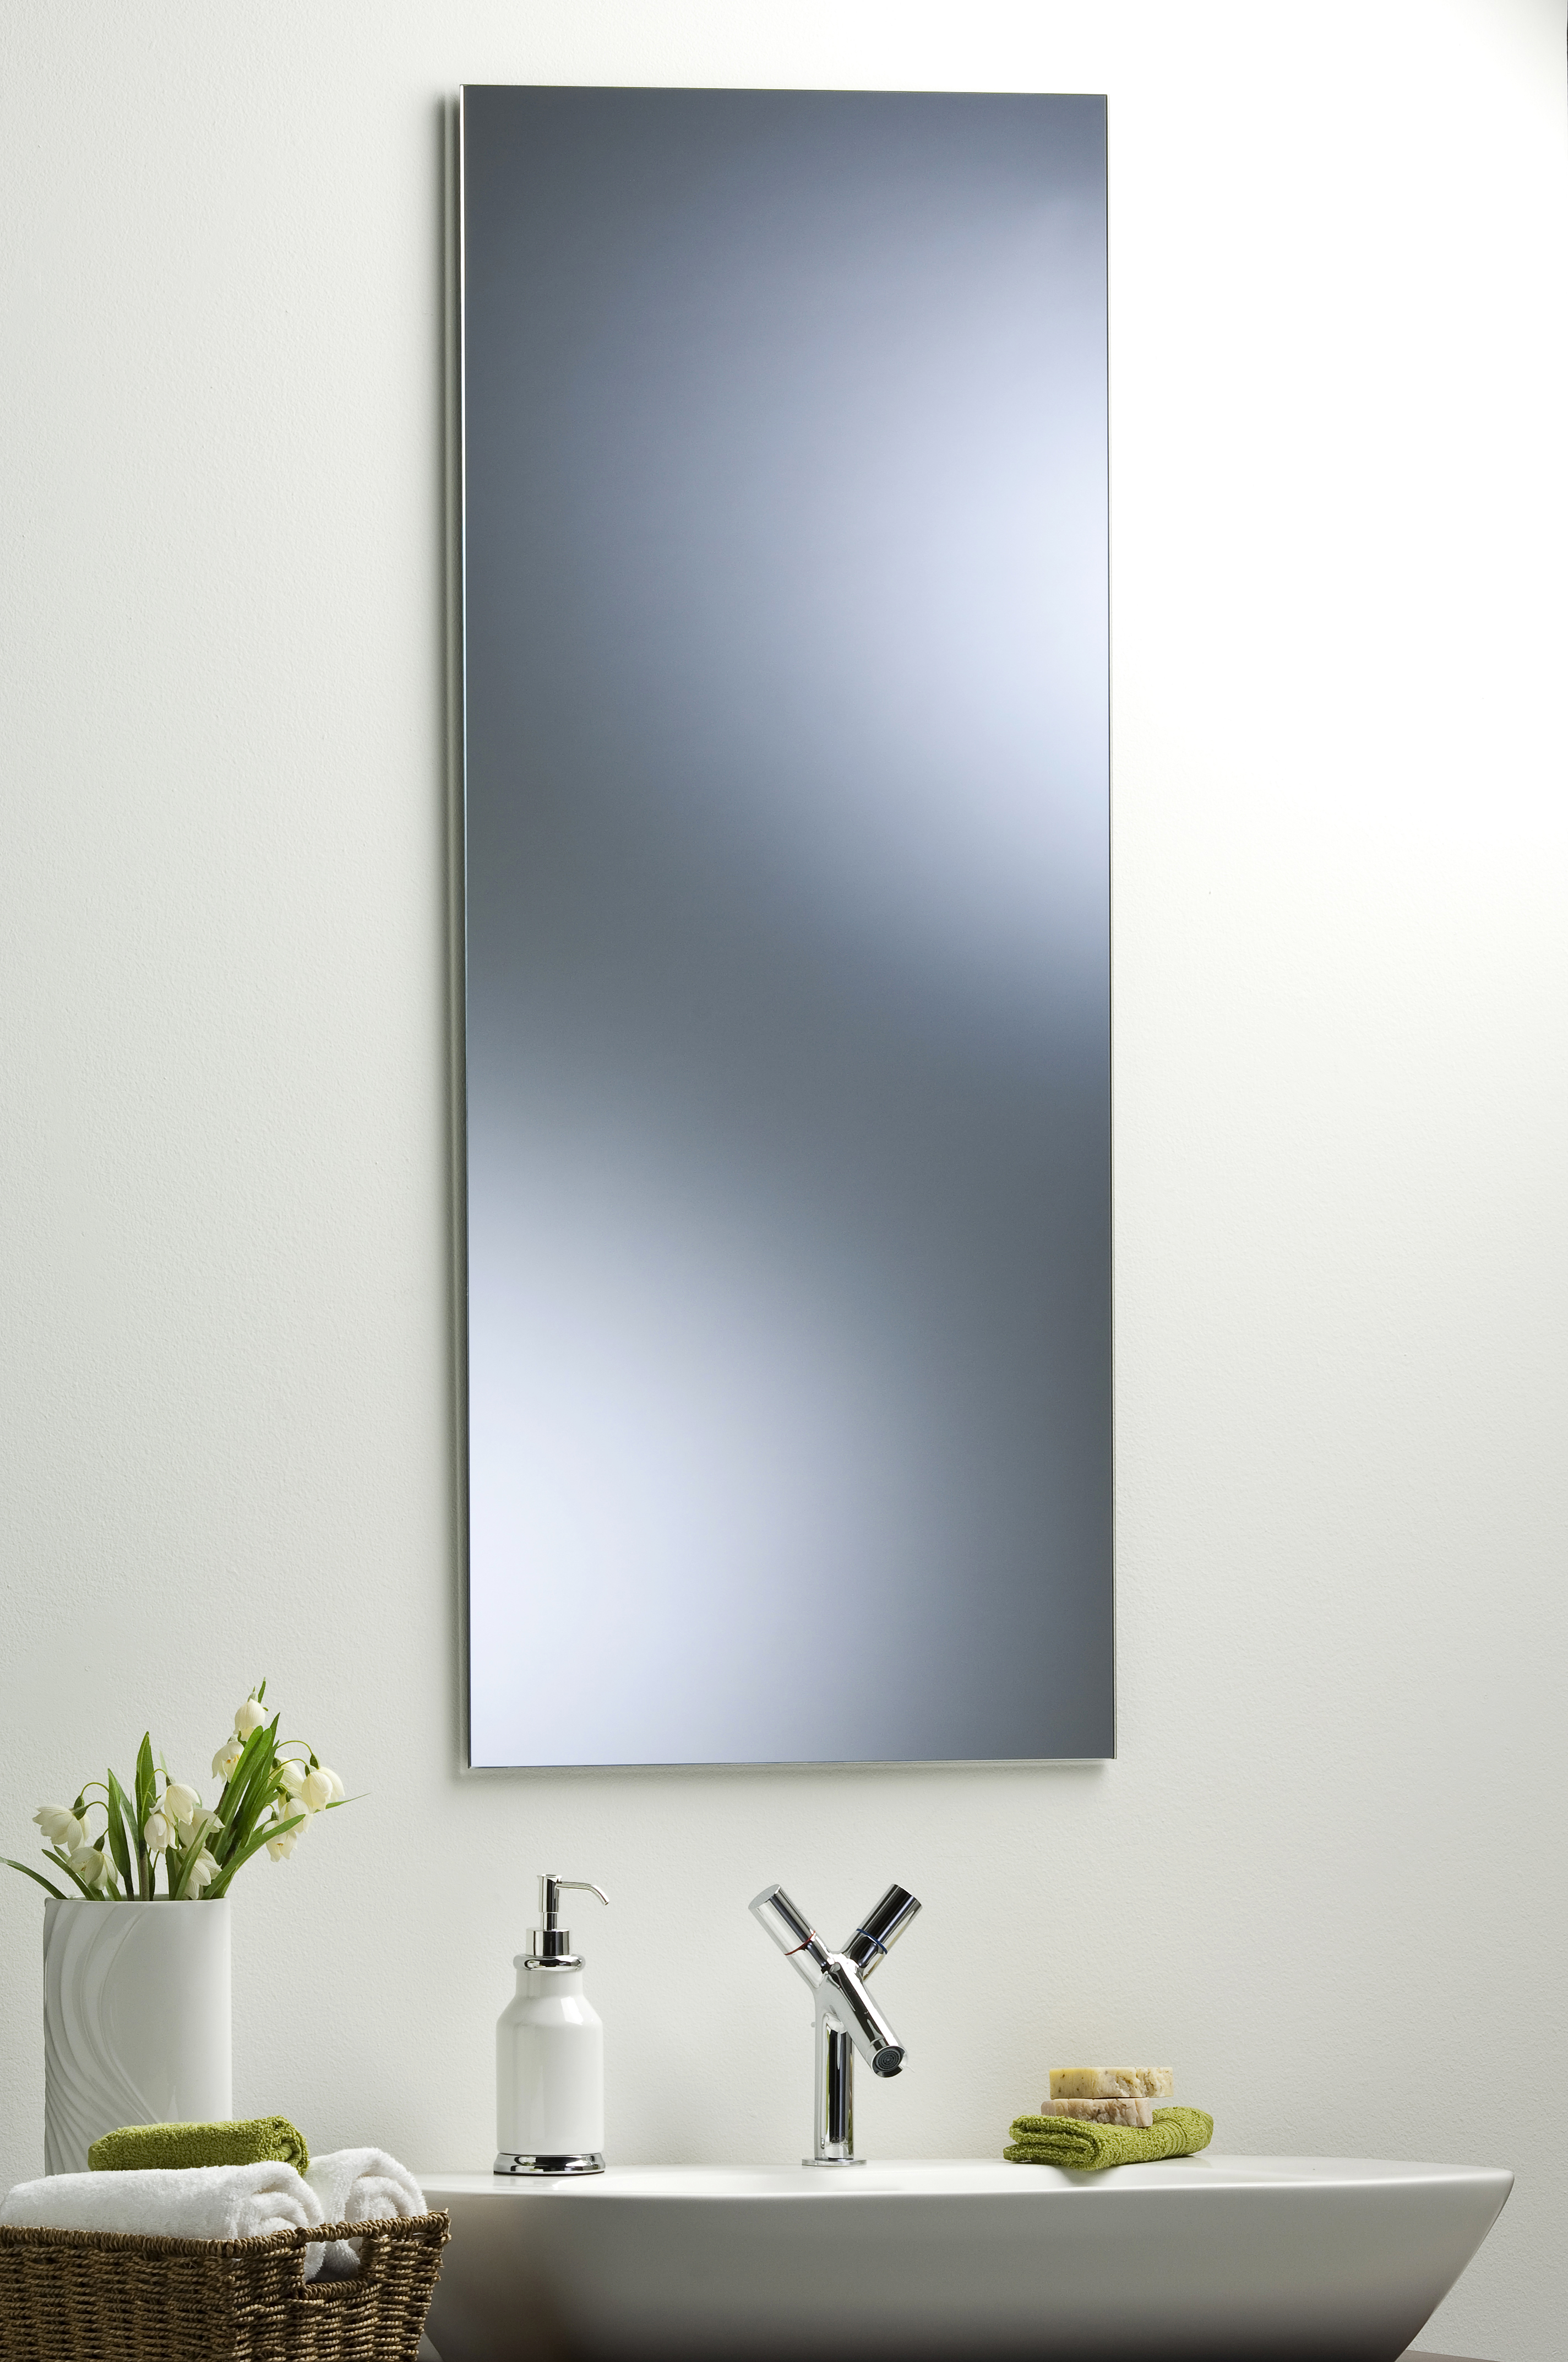 Bathroom mirror modern stylish rectangular hang both ways plain wall mounted ebay Neue design bathroom mirror